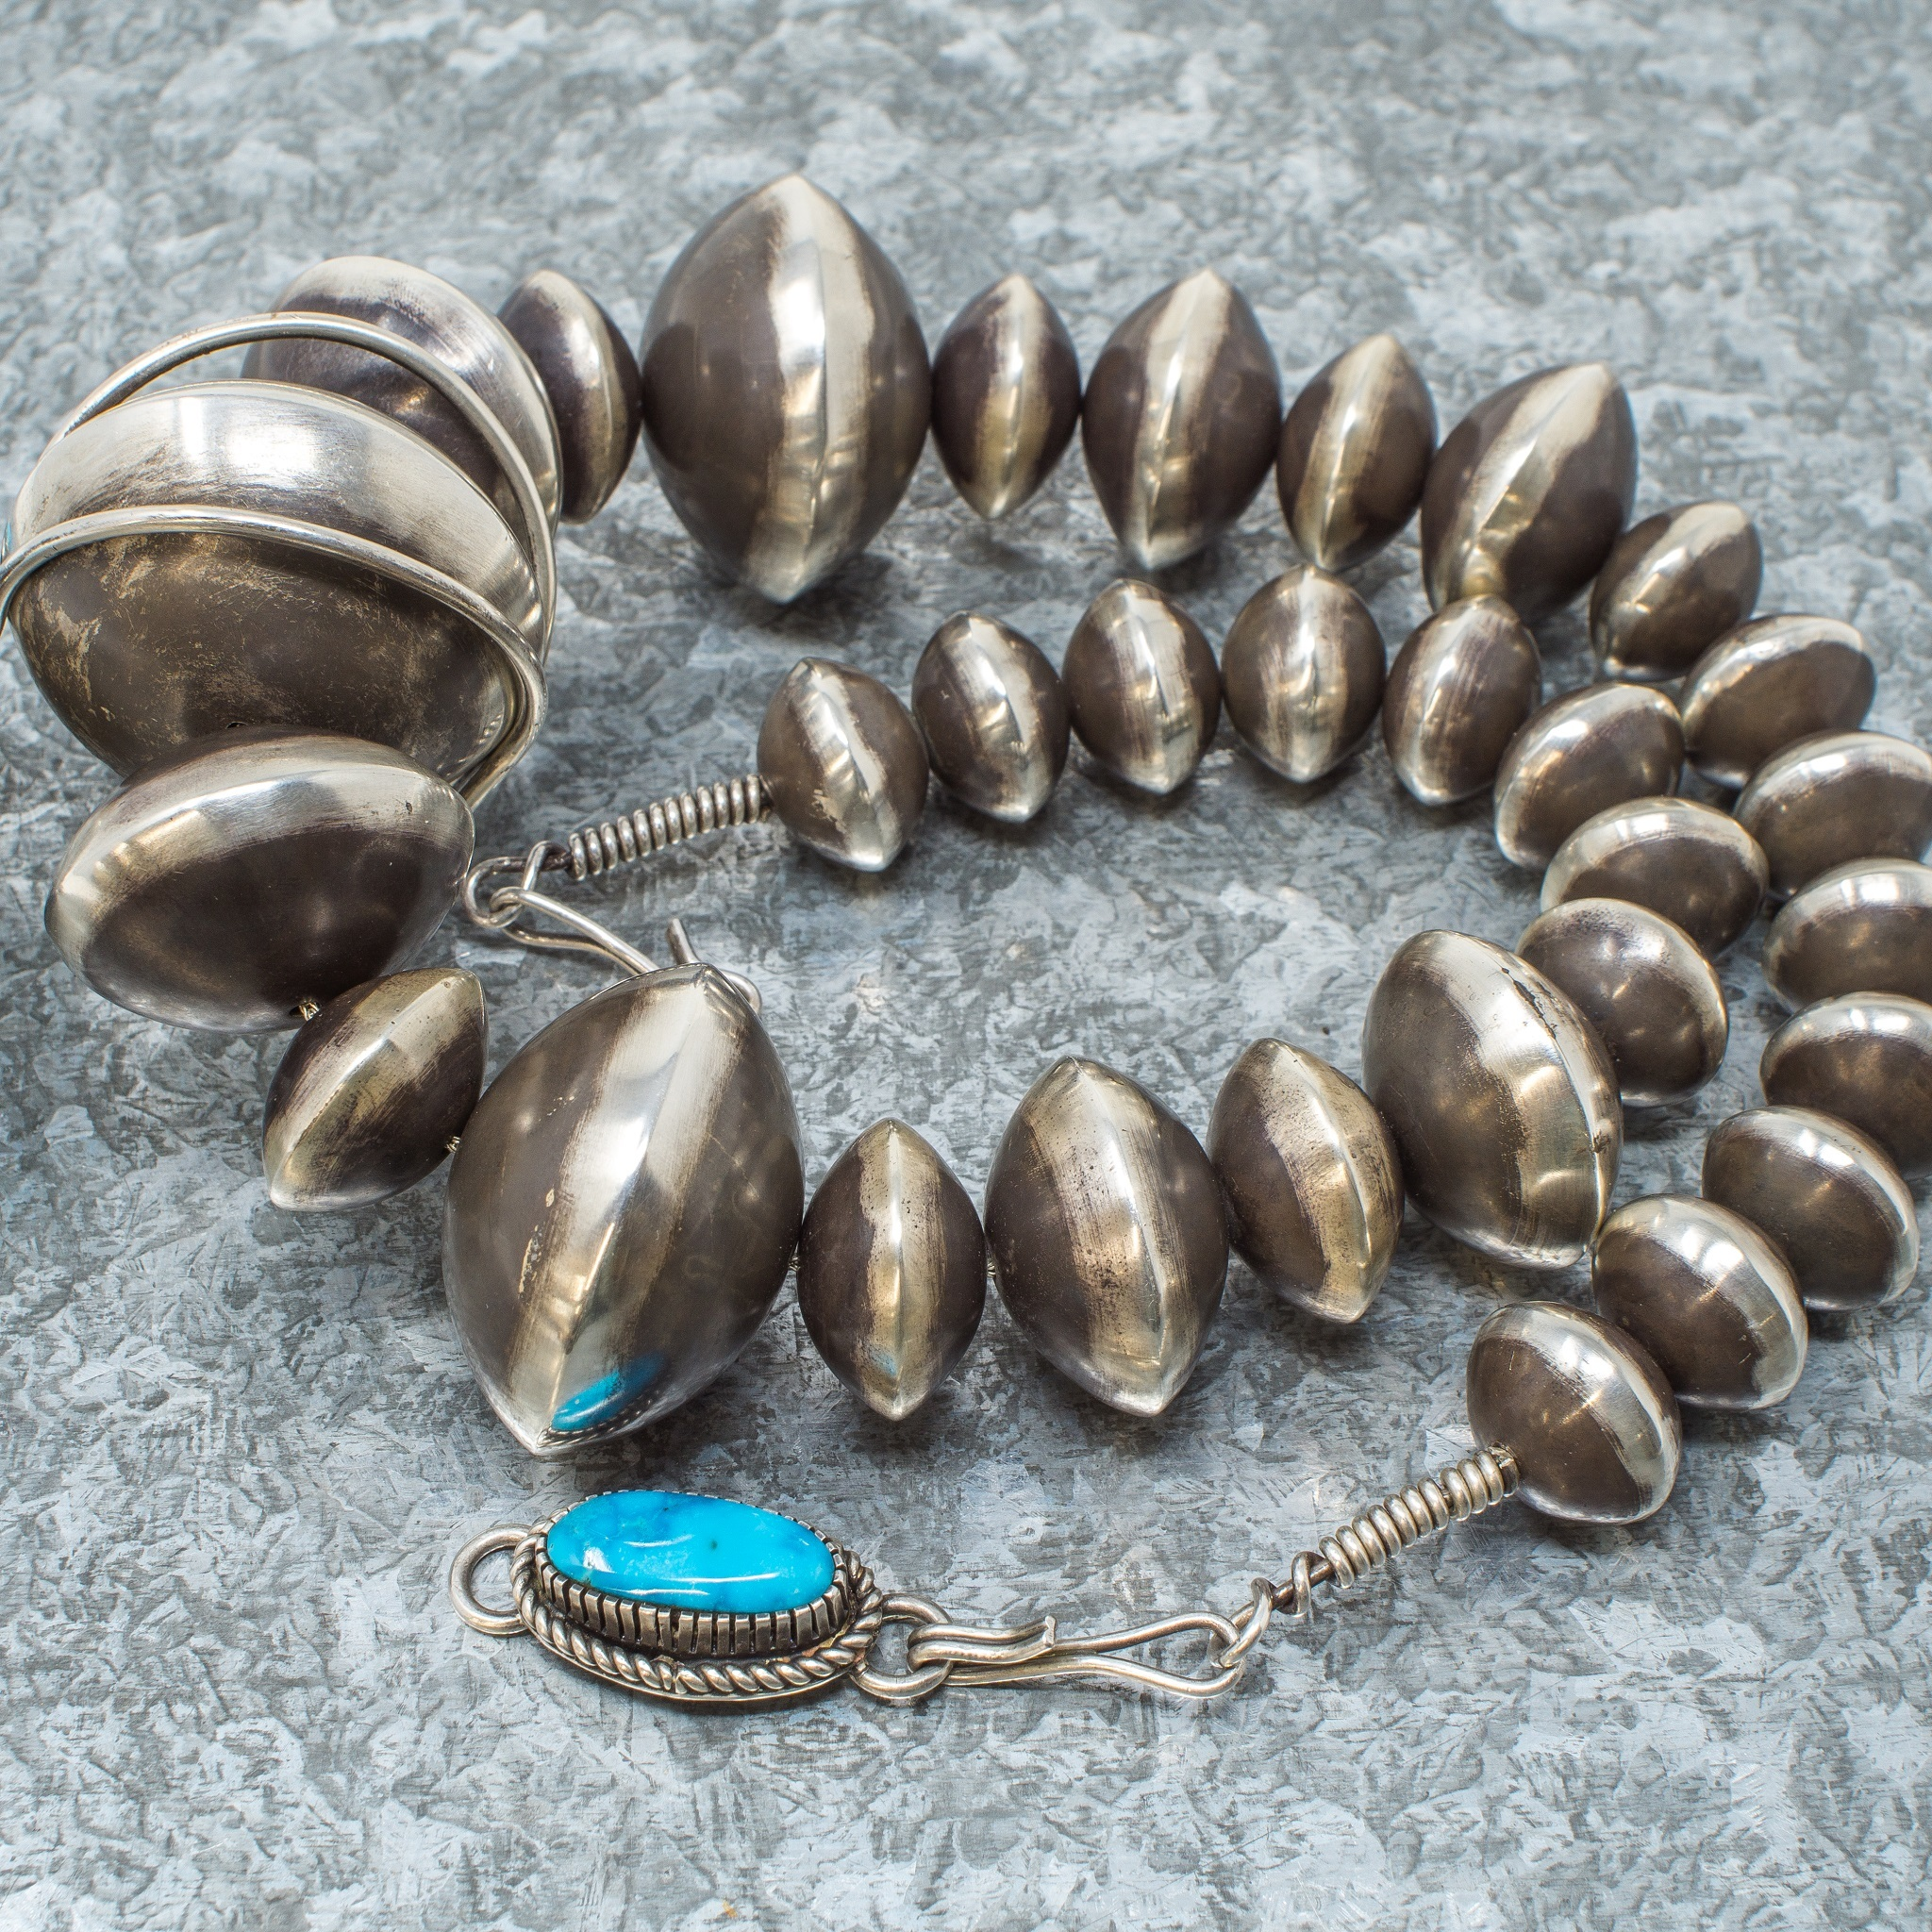 Navajo Pearls & Morenci Turquoise Pendant by Tommy Jackson